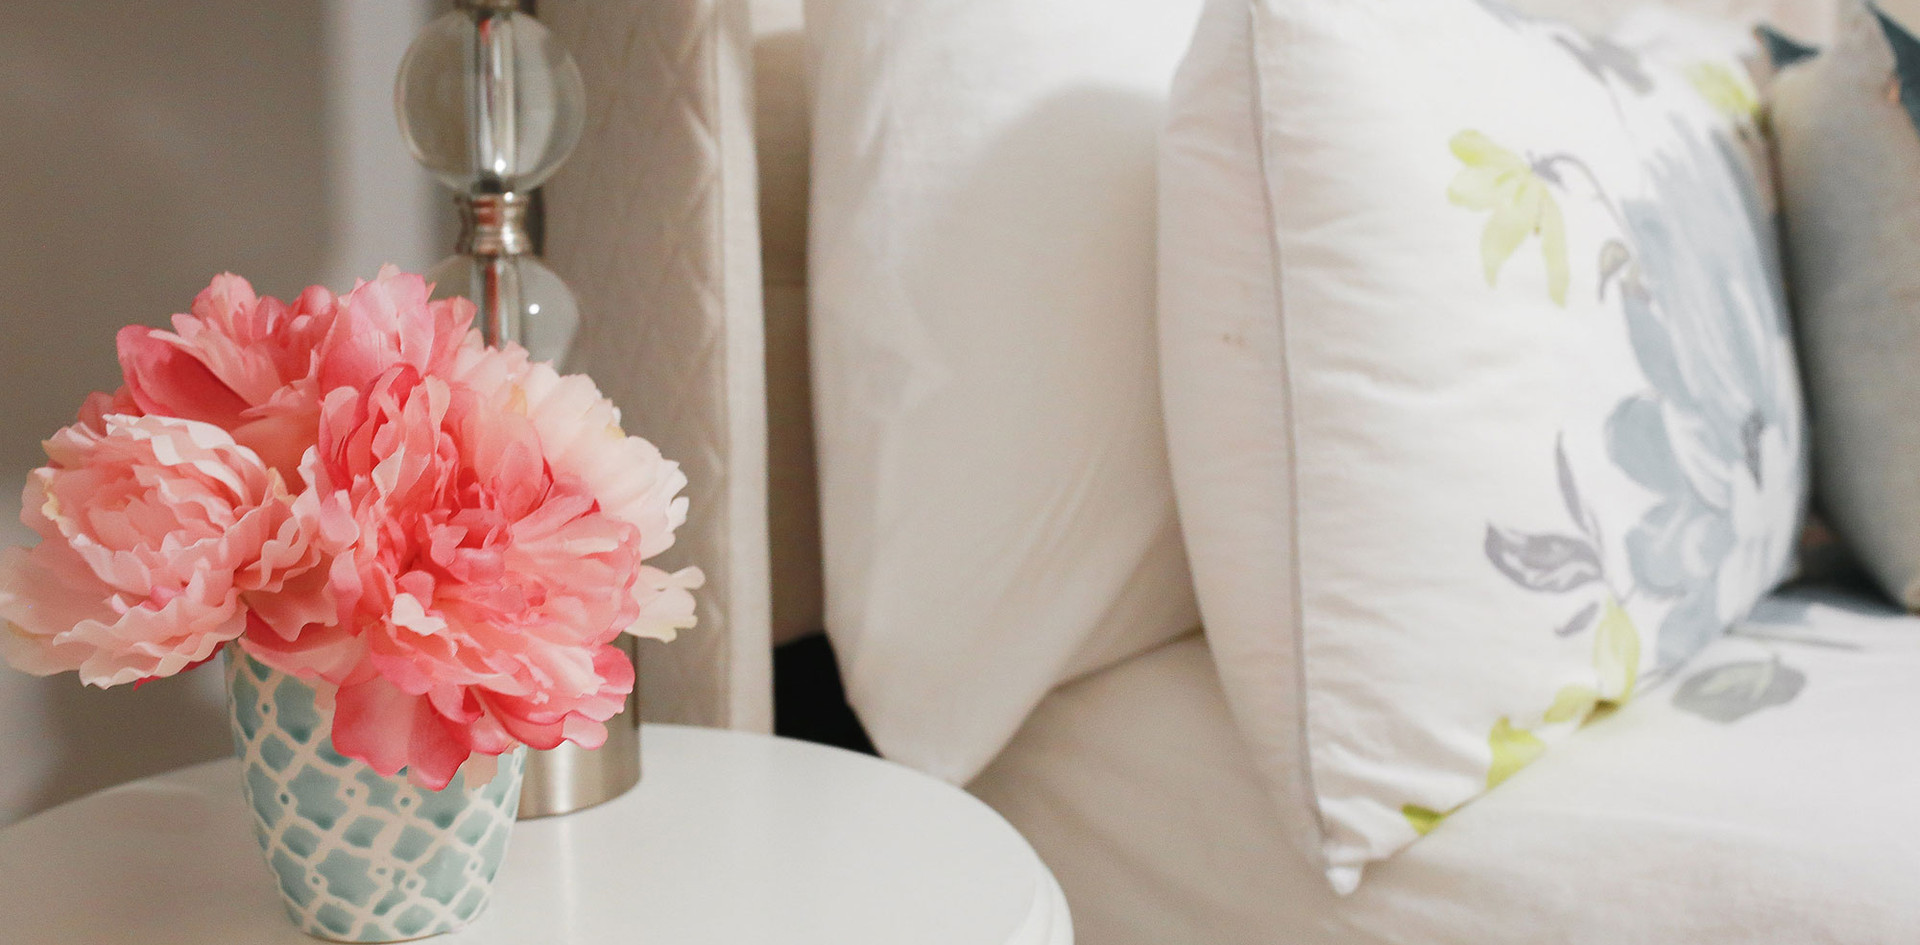 Guest Room Design, Light and Fresh